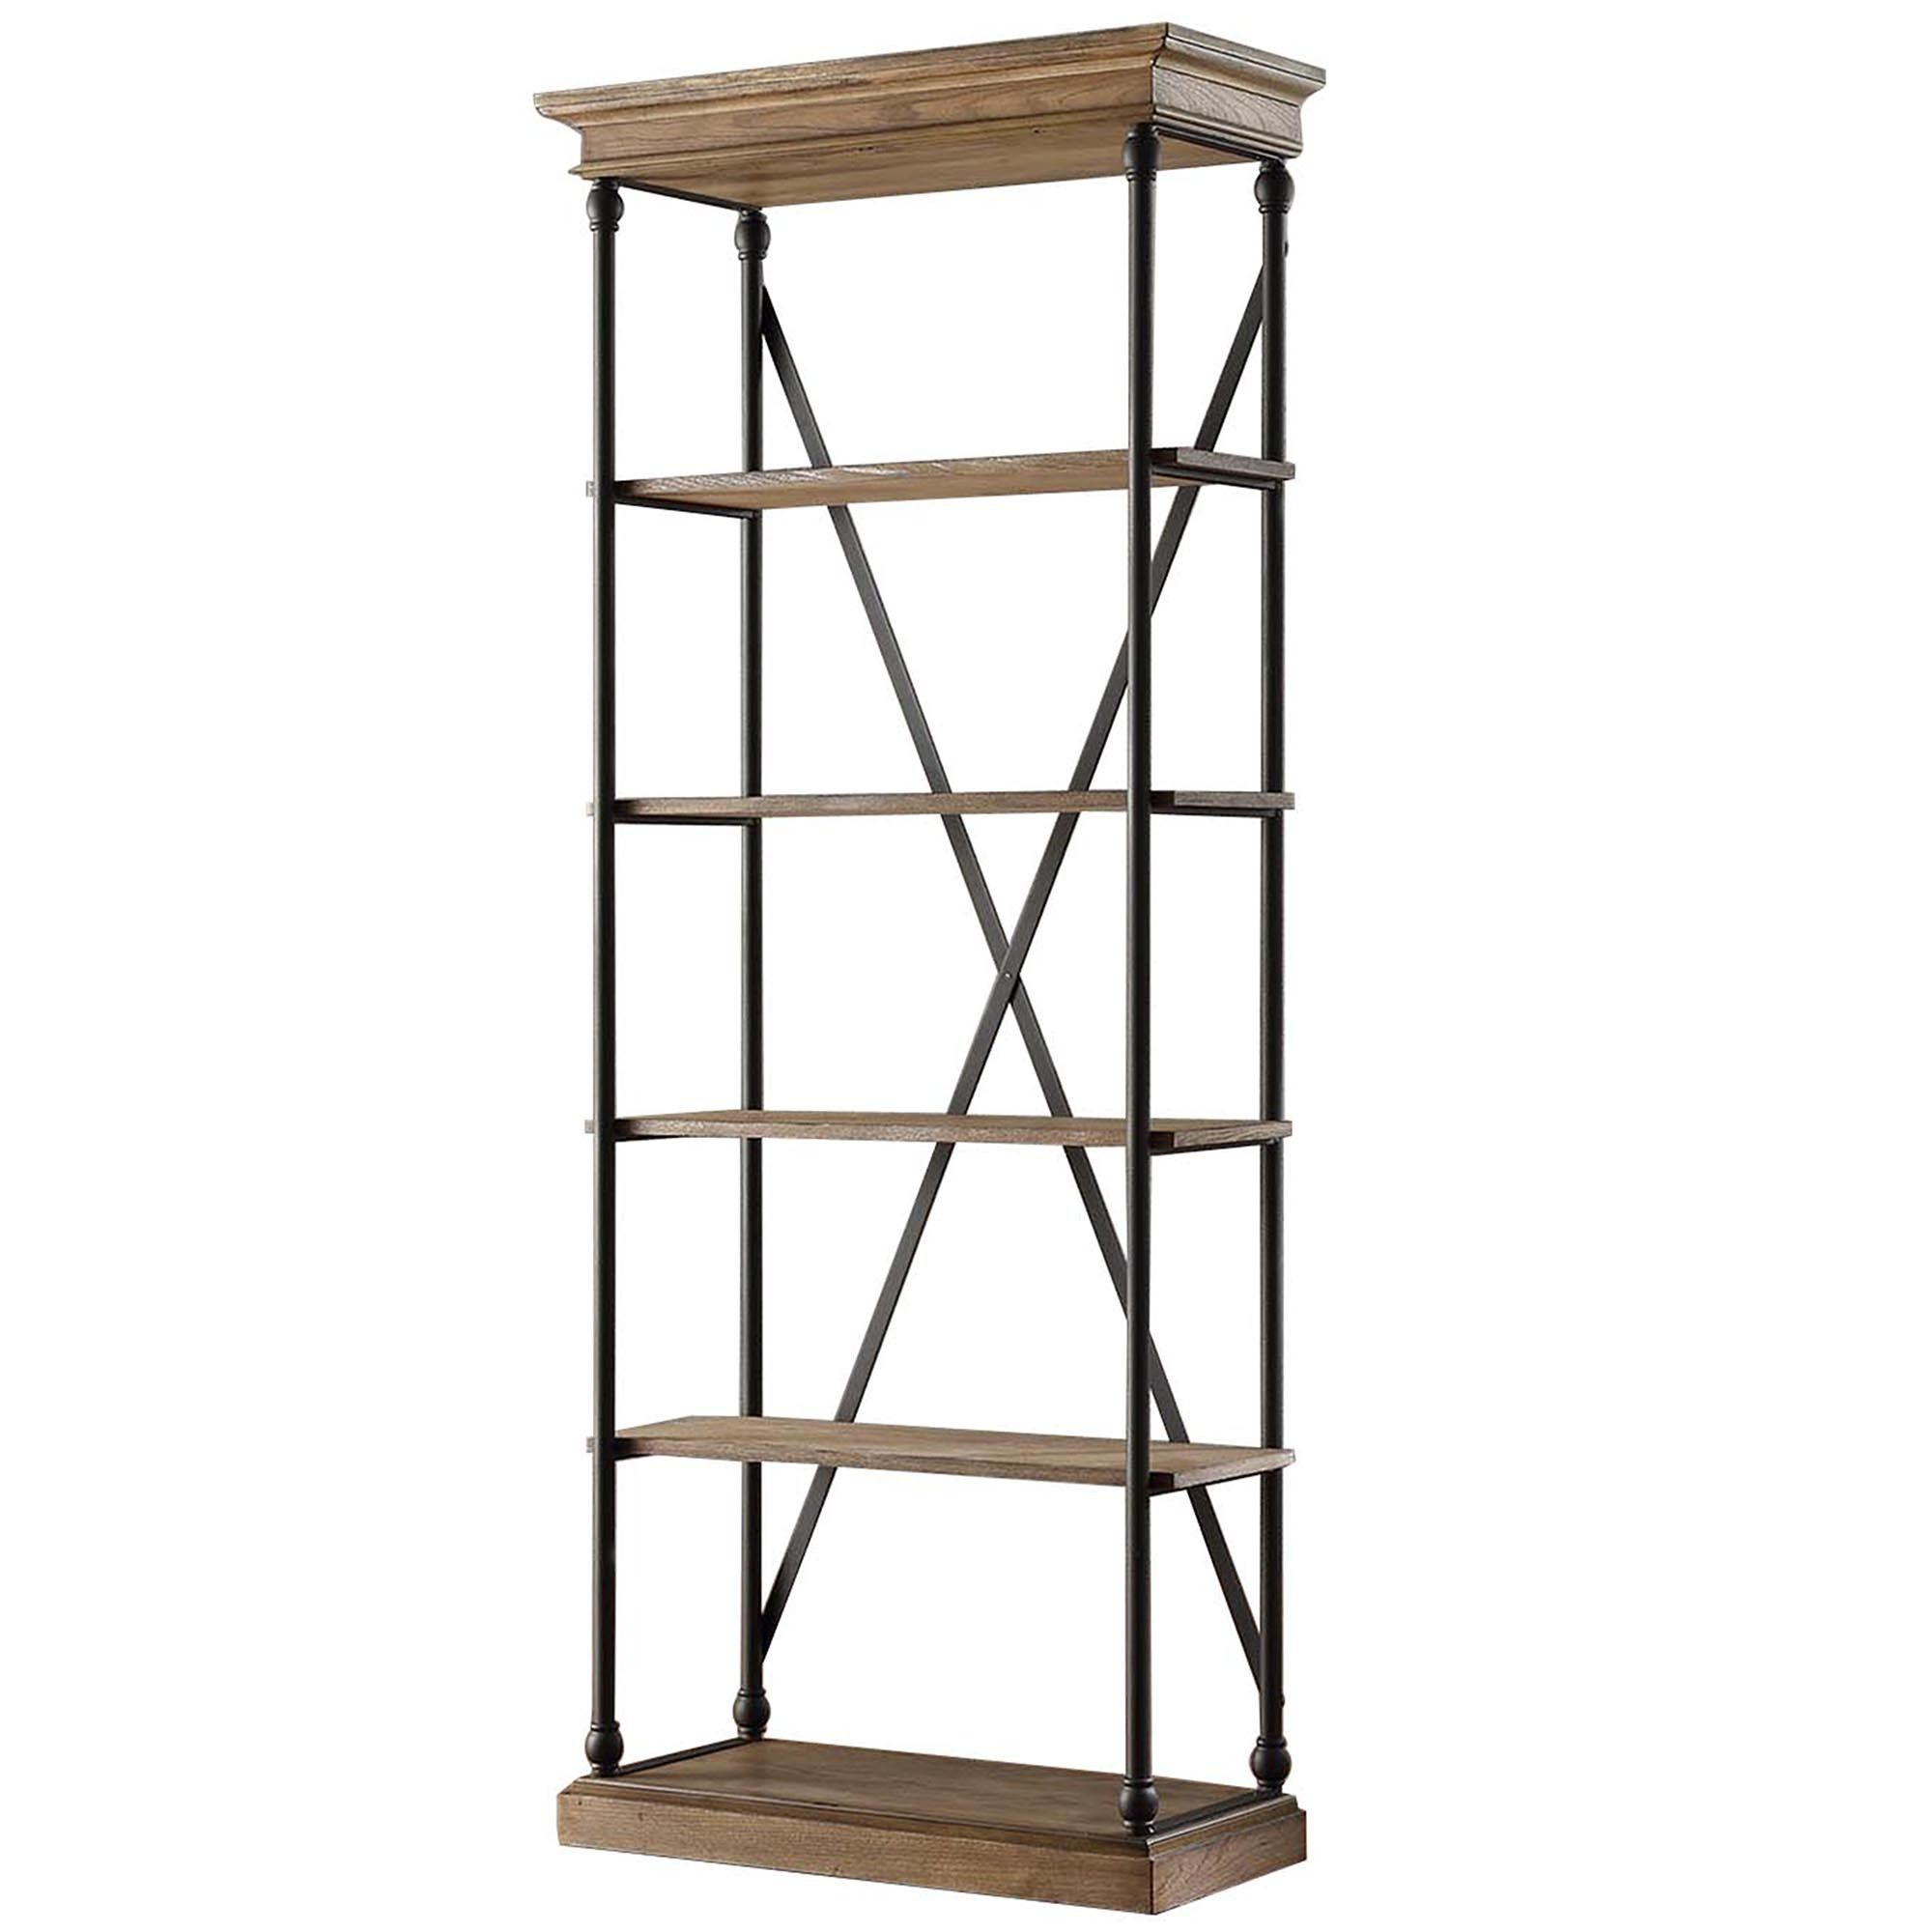 Etagere Bookcase (View 9 of 20)